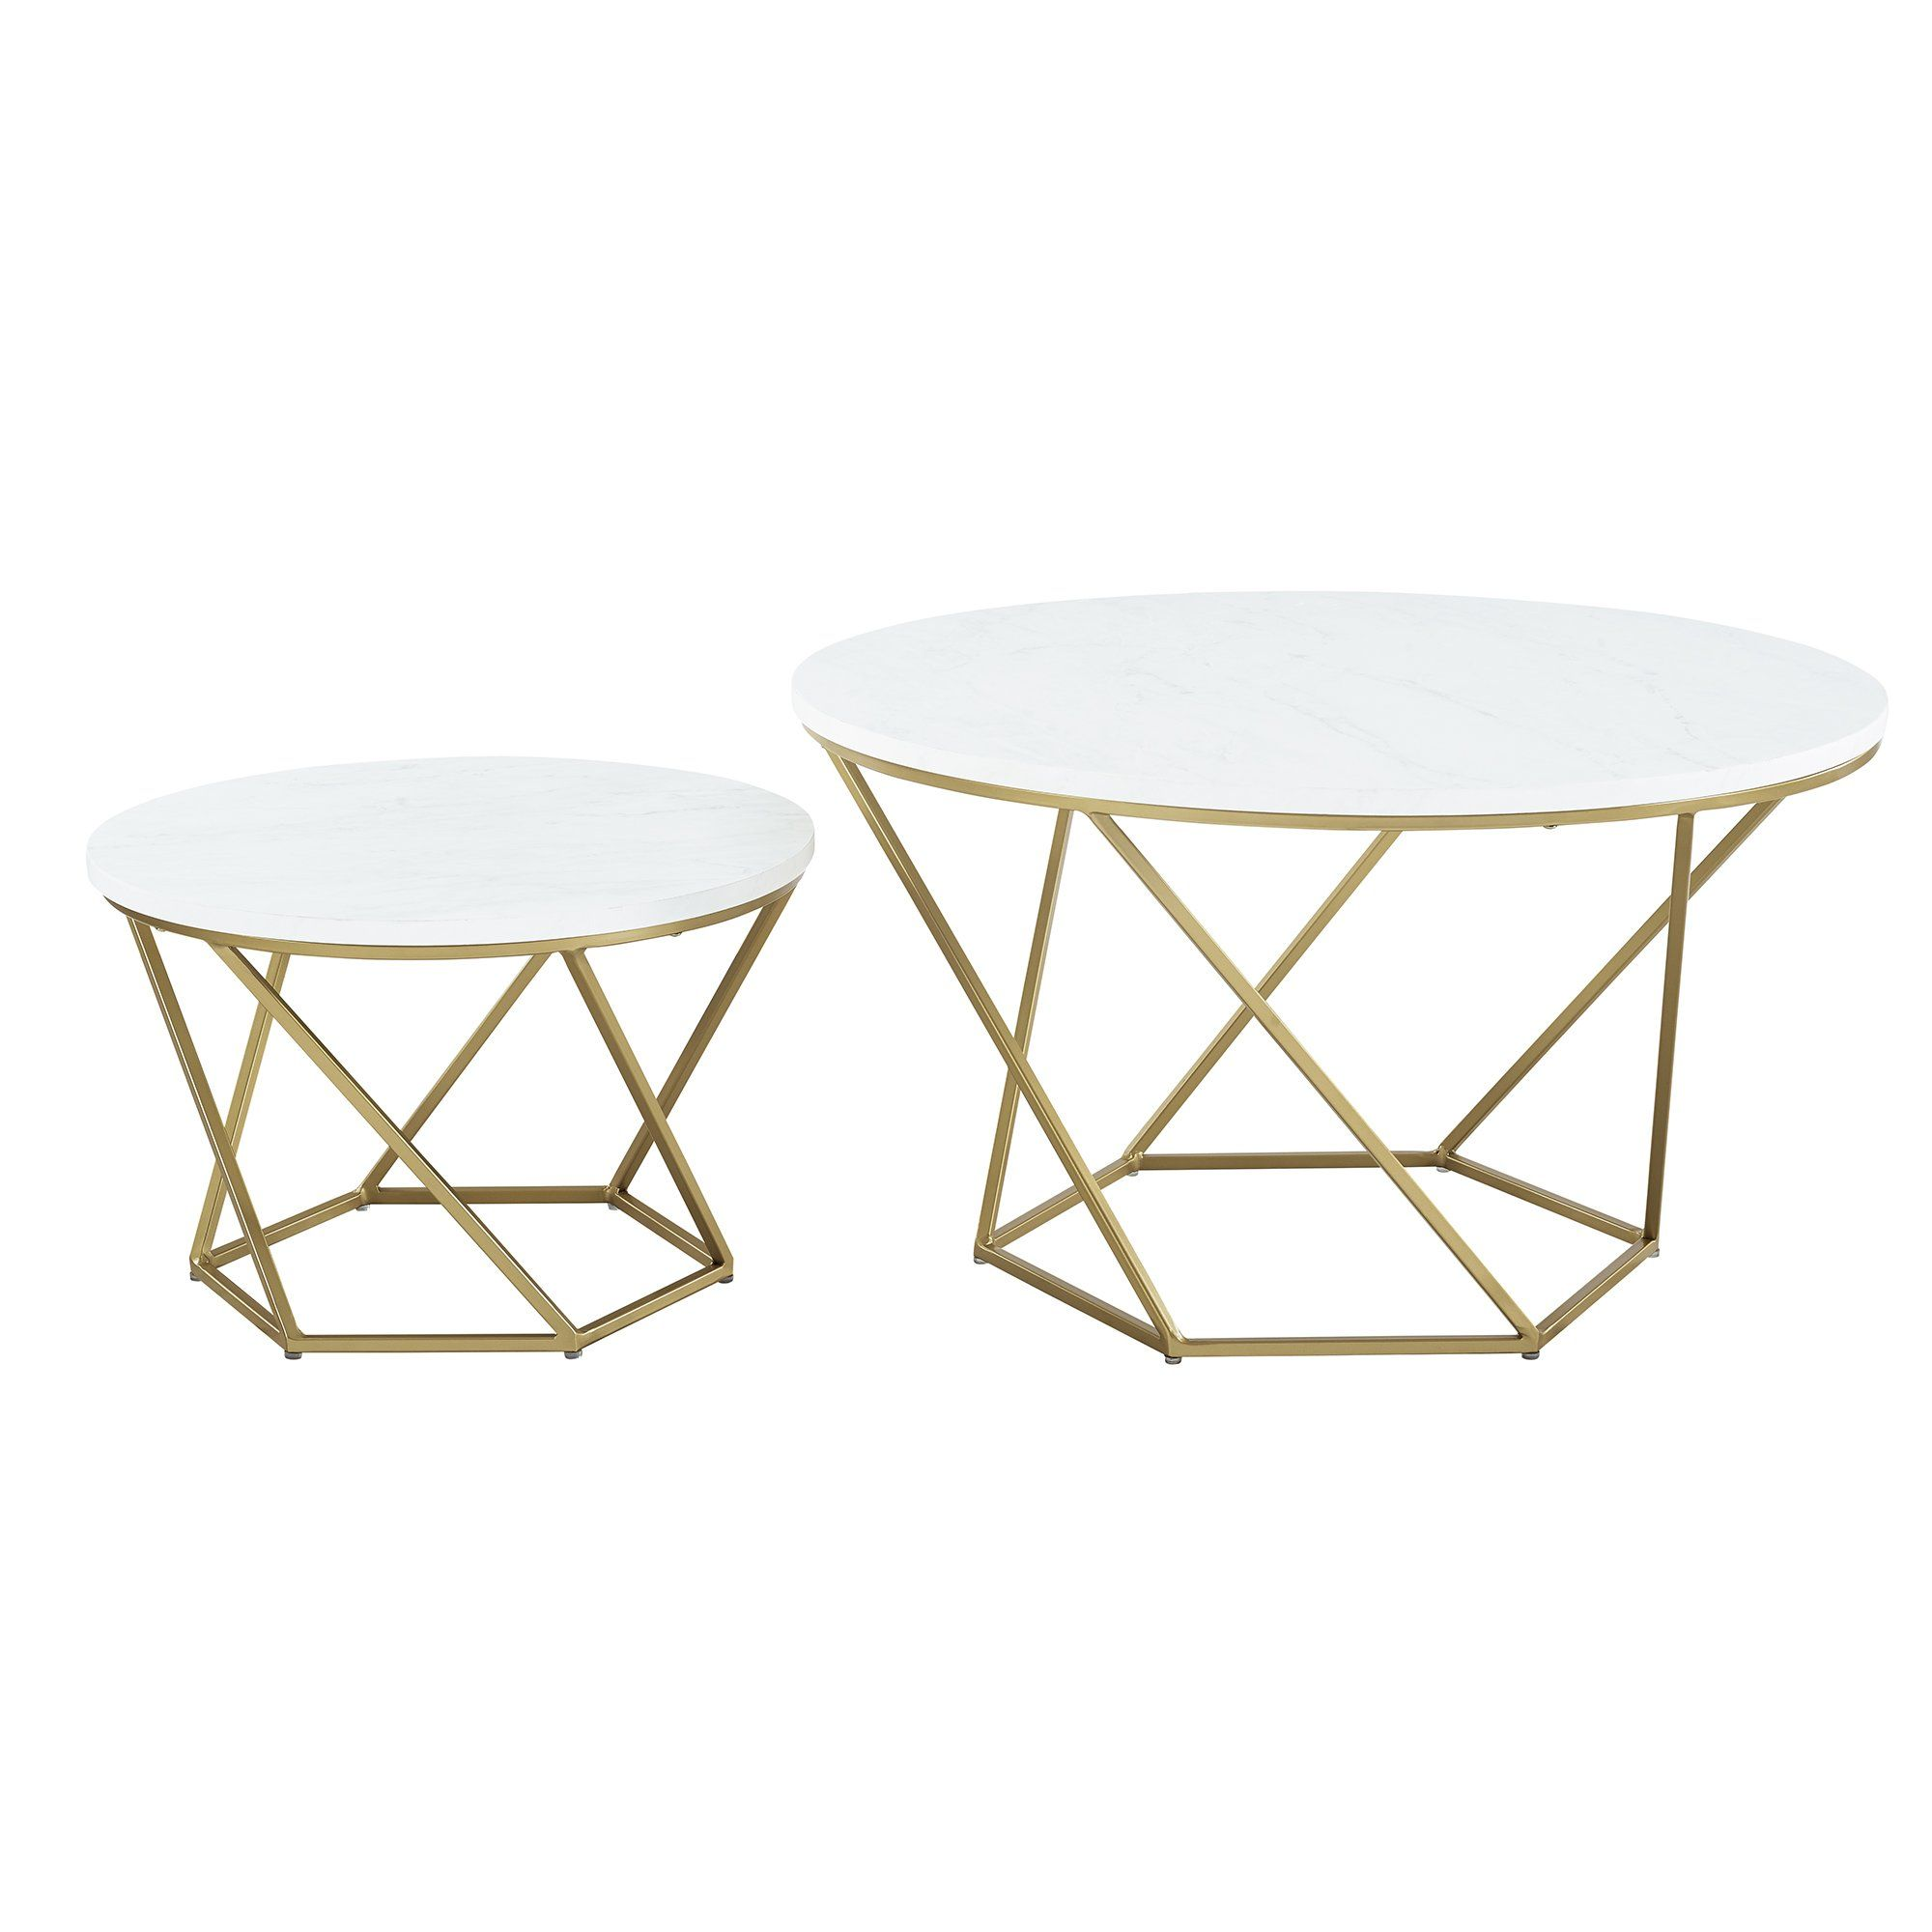 Terrific Modern Nesting Coffee Table Set White Marble Gold Caraccident5 Cool Chair Designs And Ideas Caraccident5Info